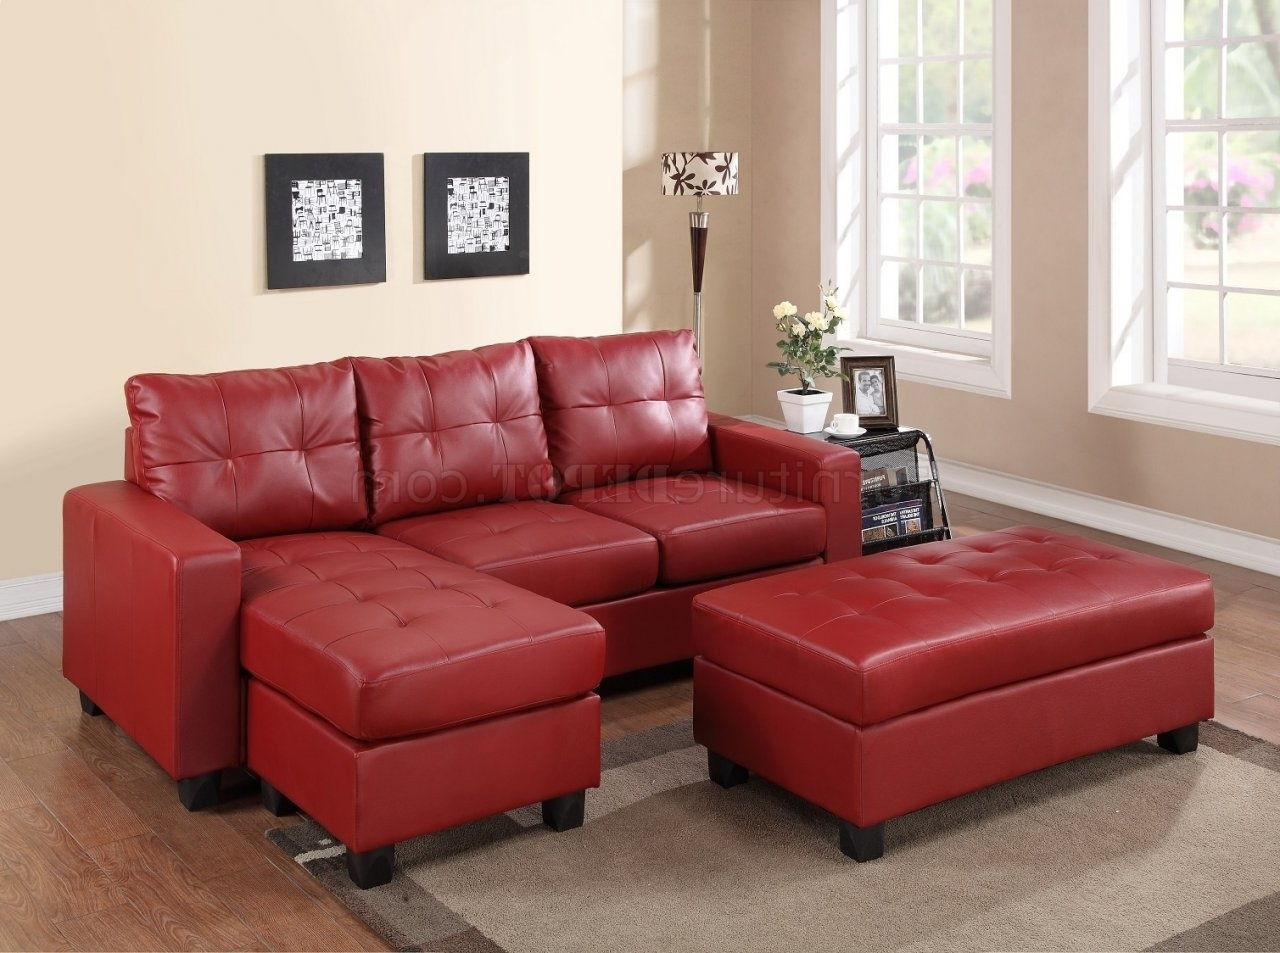 2511 Sectional Sofa Set In Red Bonded Leather Match Pu Throughout Well Known Red Leather Sectional Couches (View 13 of 20)